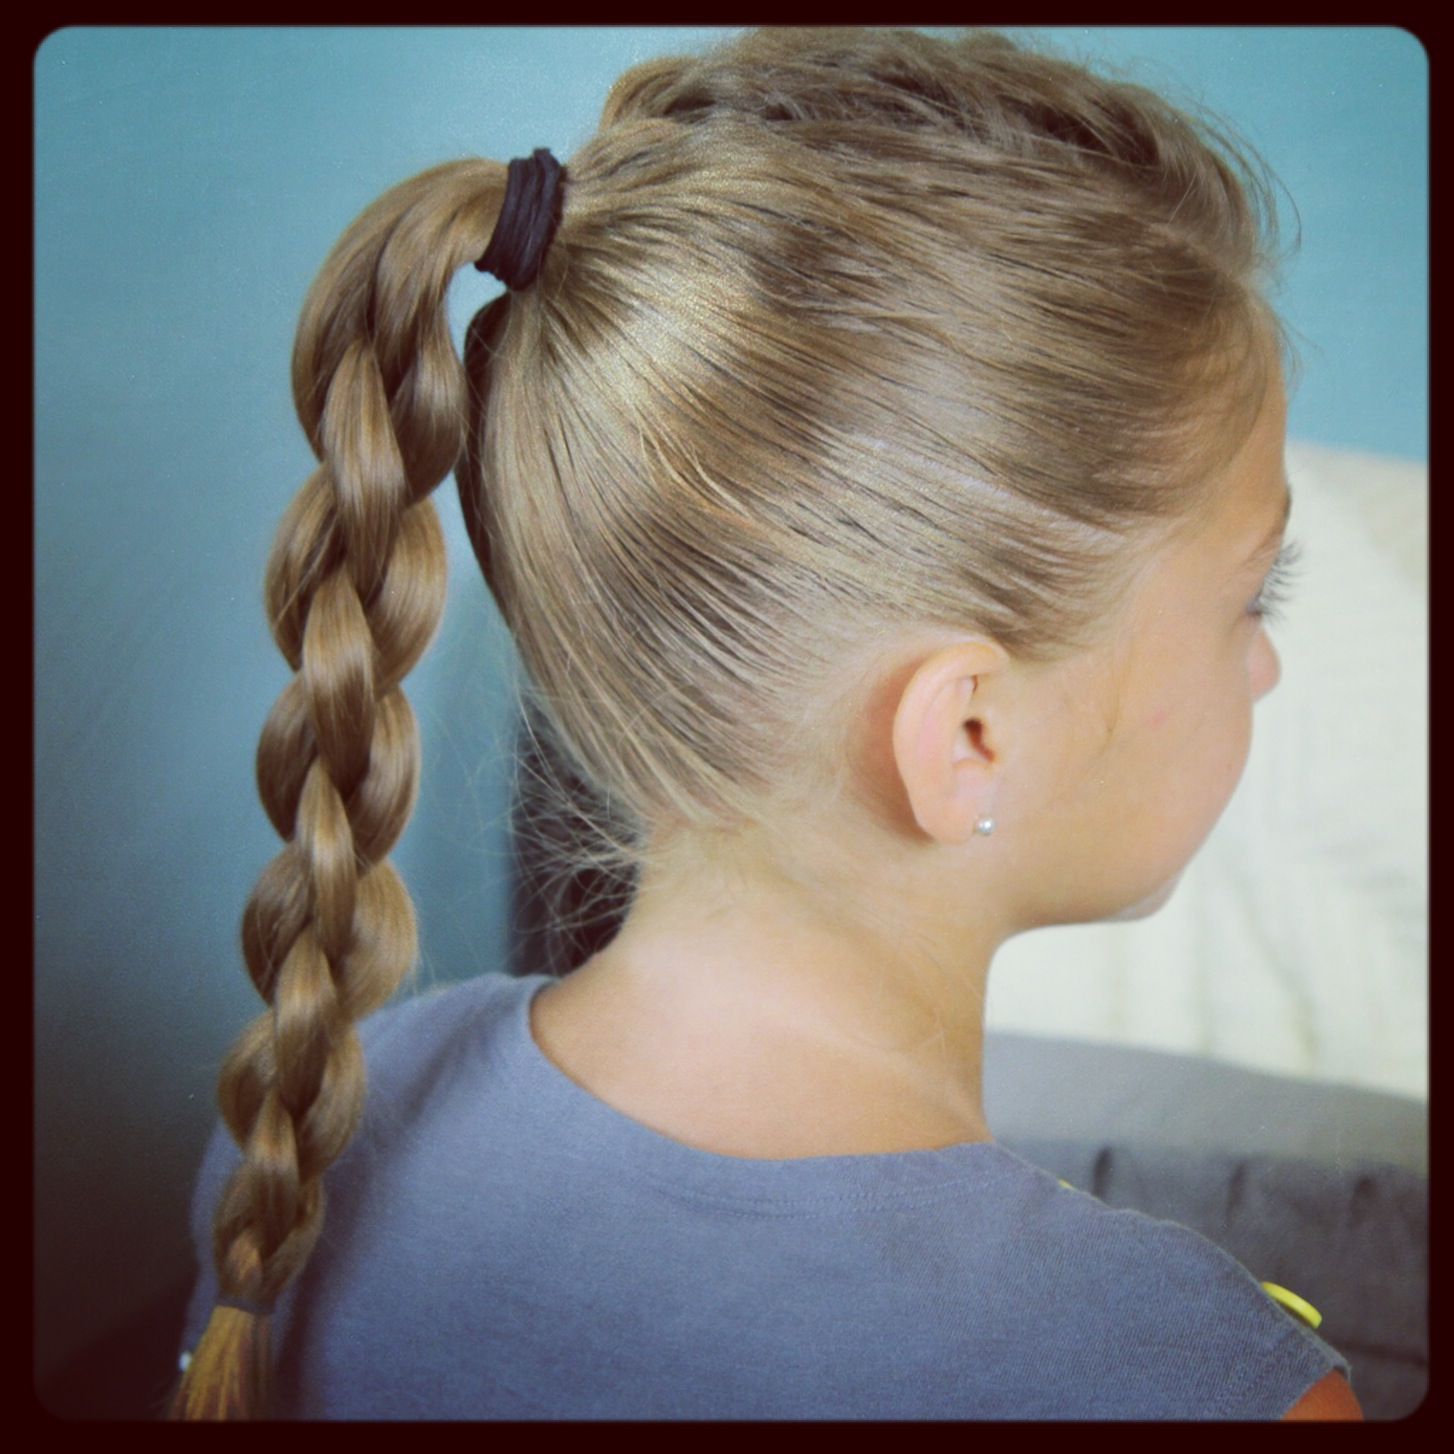 Cute Girls Hairstyles: Single Frenchback Into Round Braid